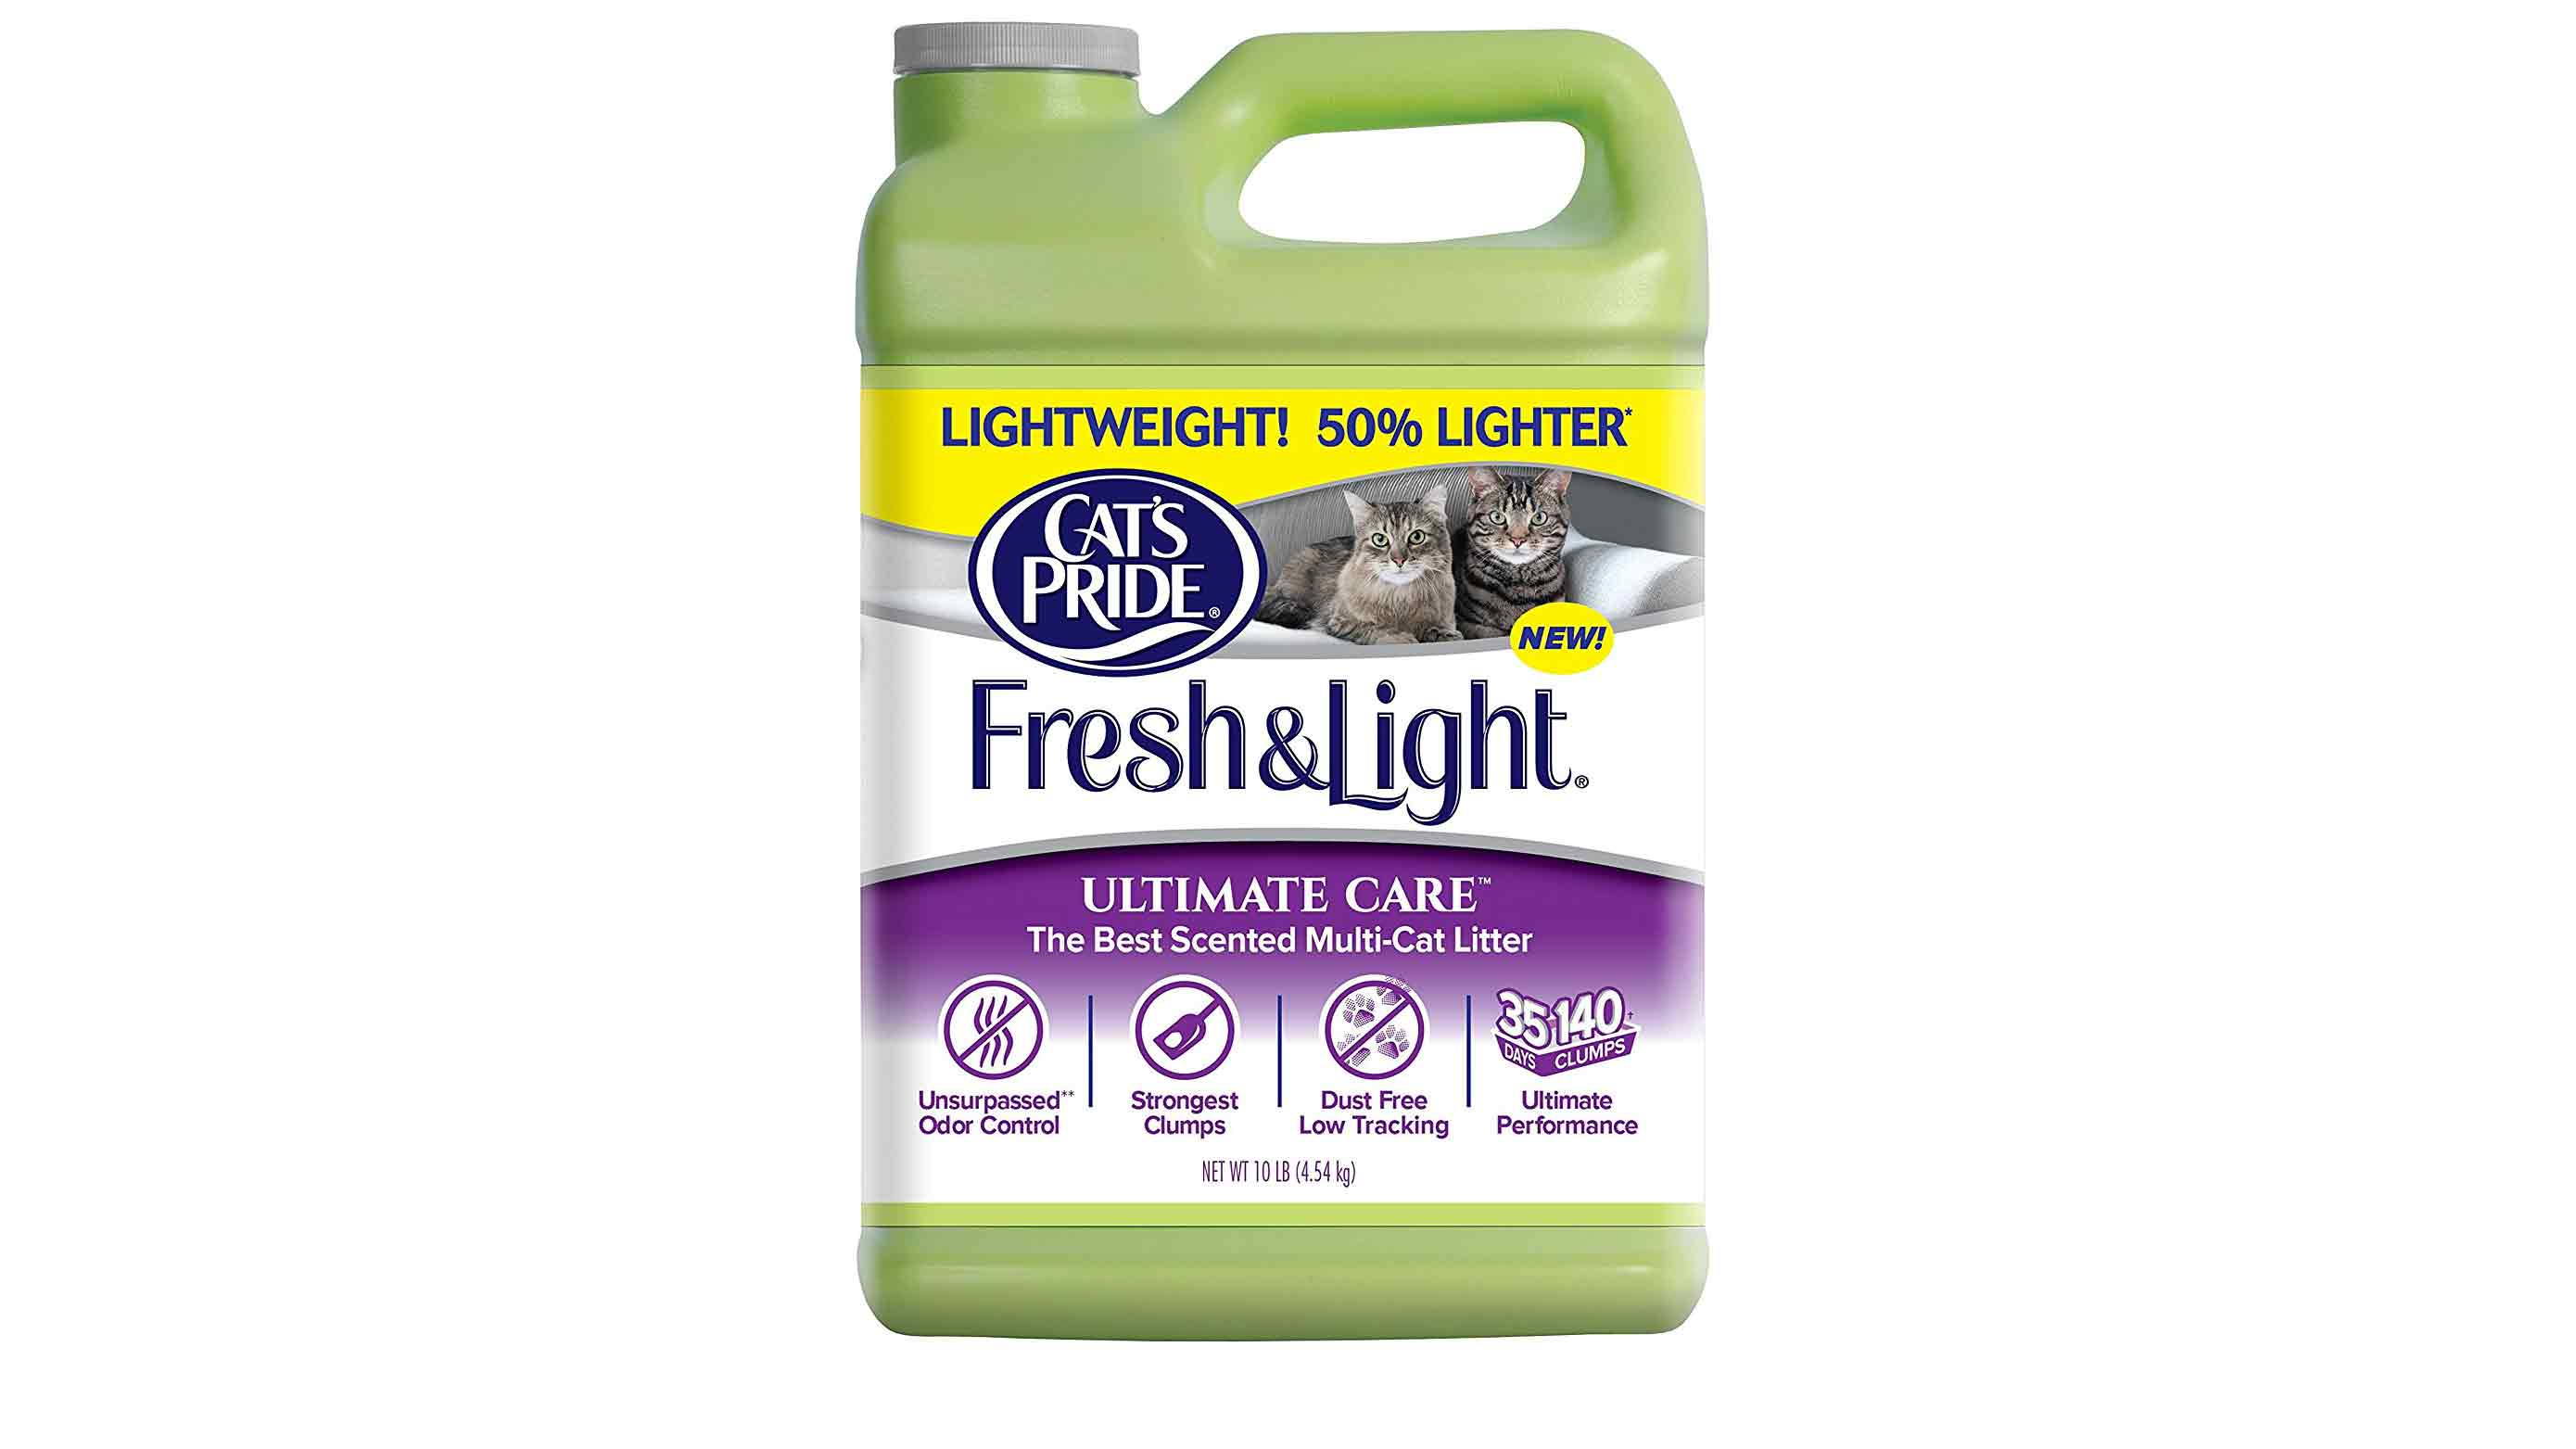 Cat's Pride Cat's Pride Fresh and Light Ultimate Care Lightweight Scented Multi-Cat Litter